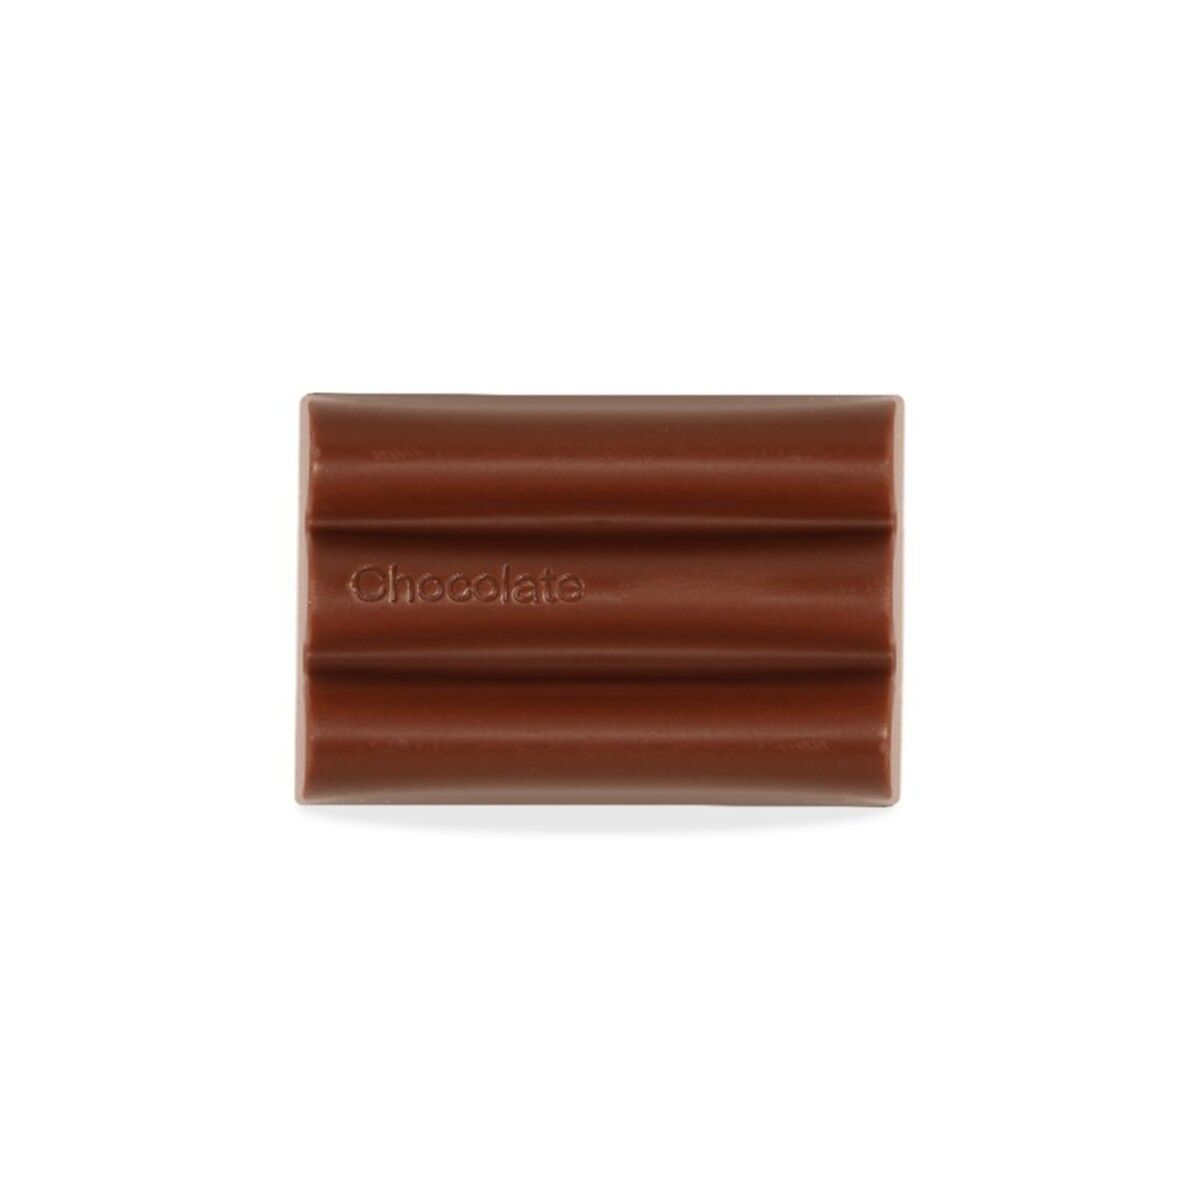 Eco Friendly 3 Bar Chocolate